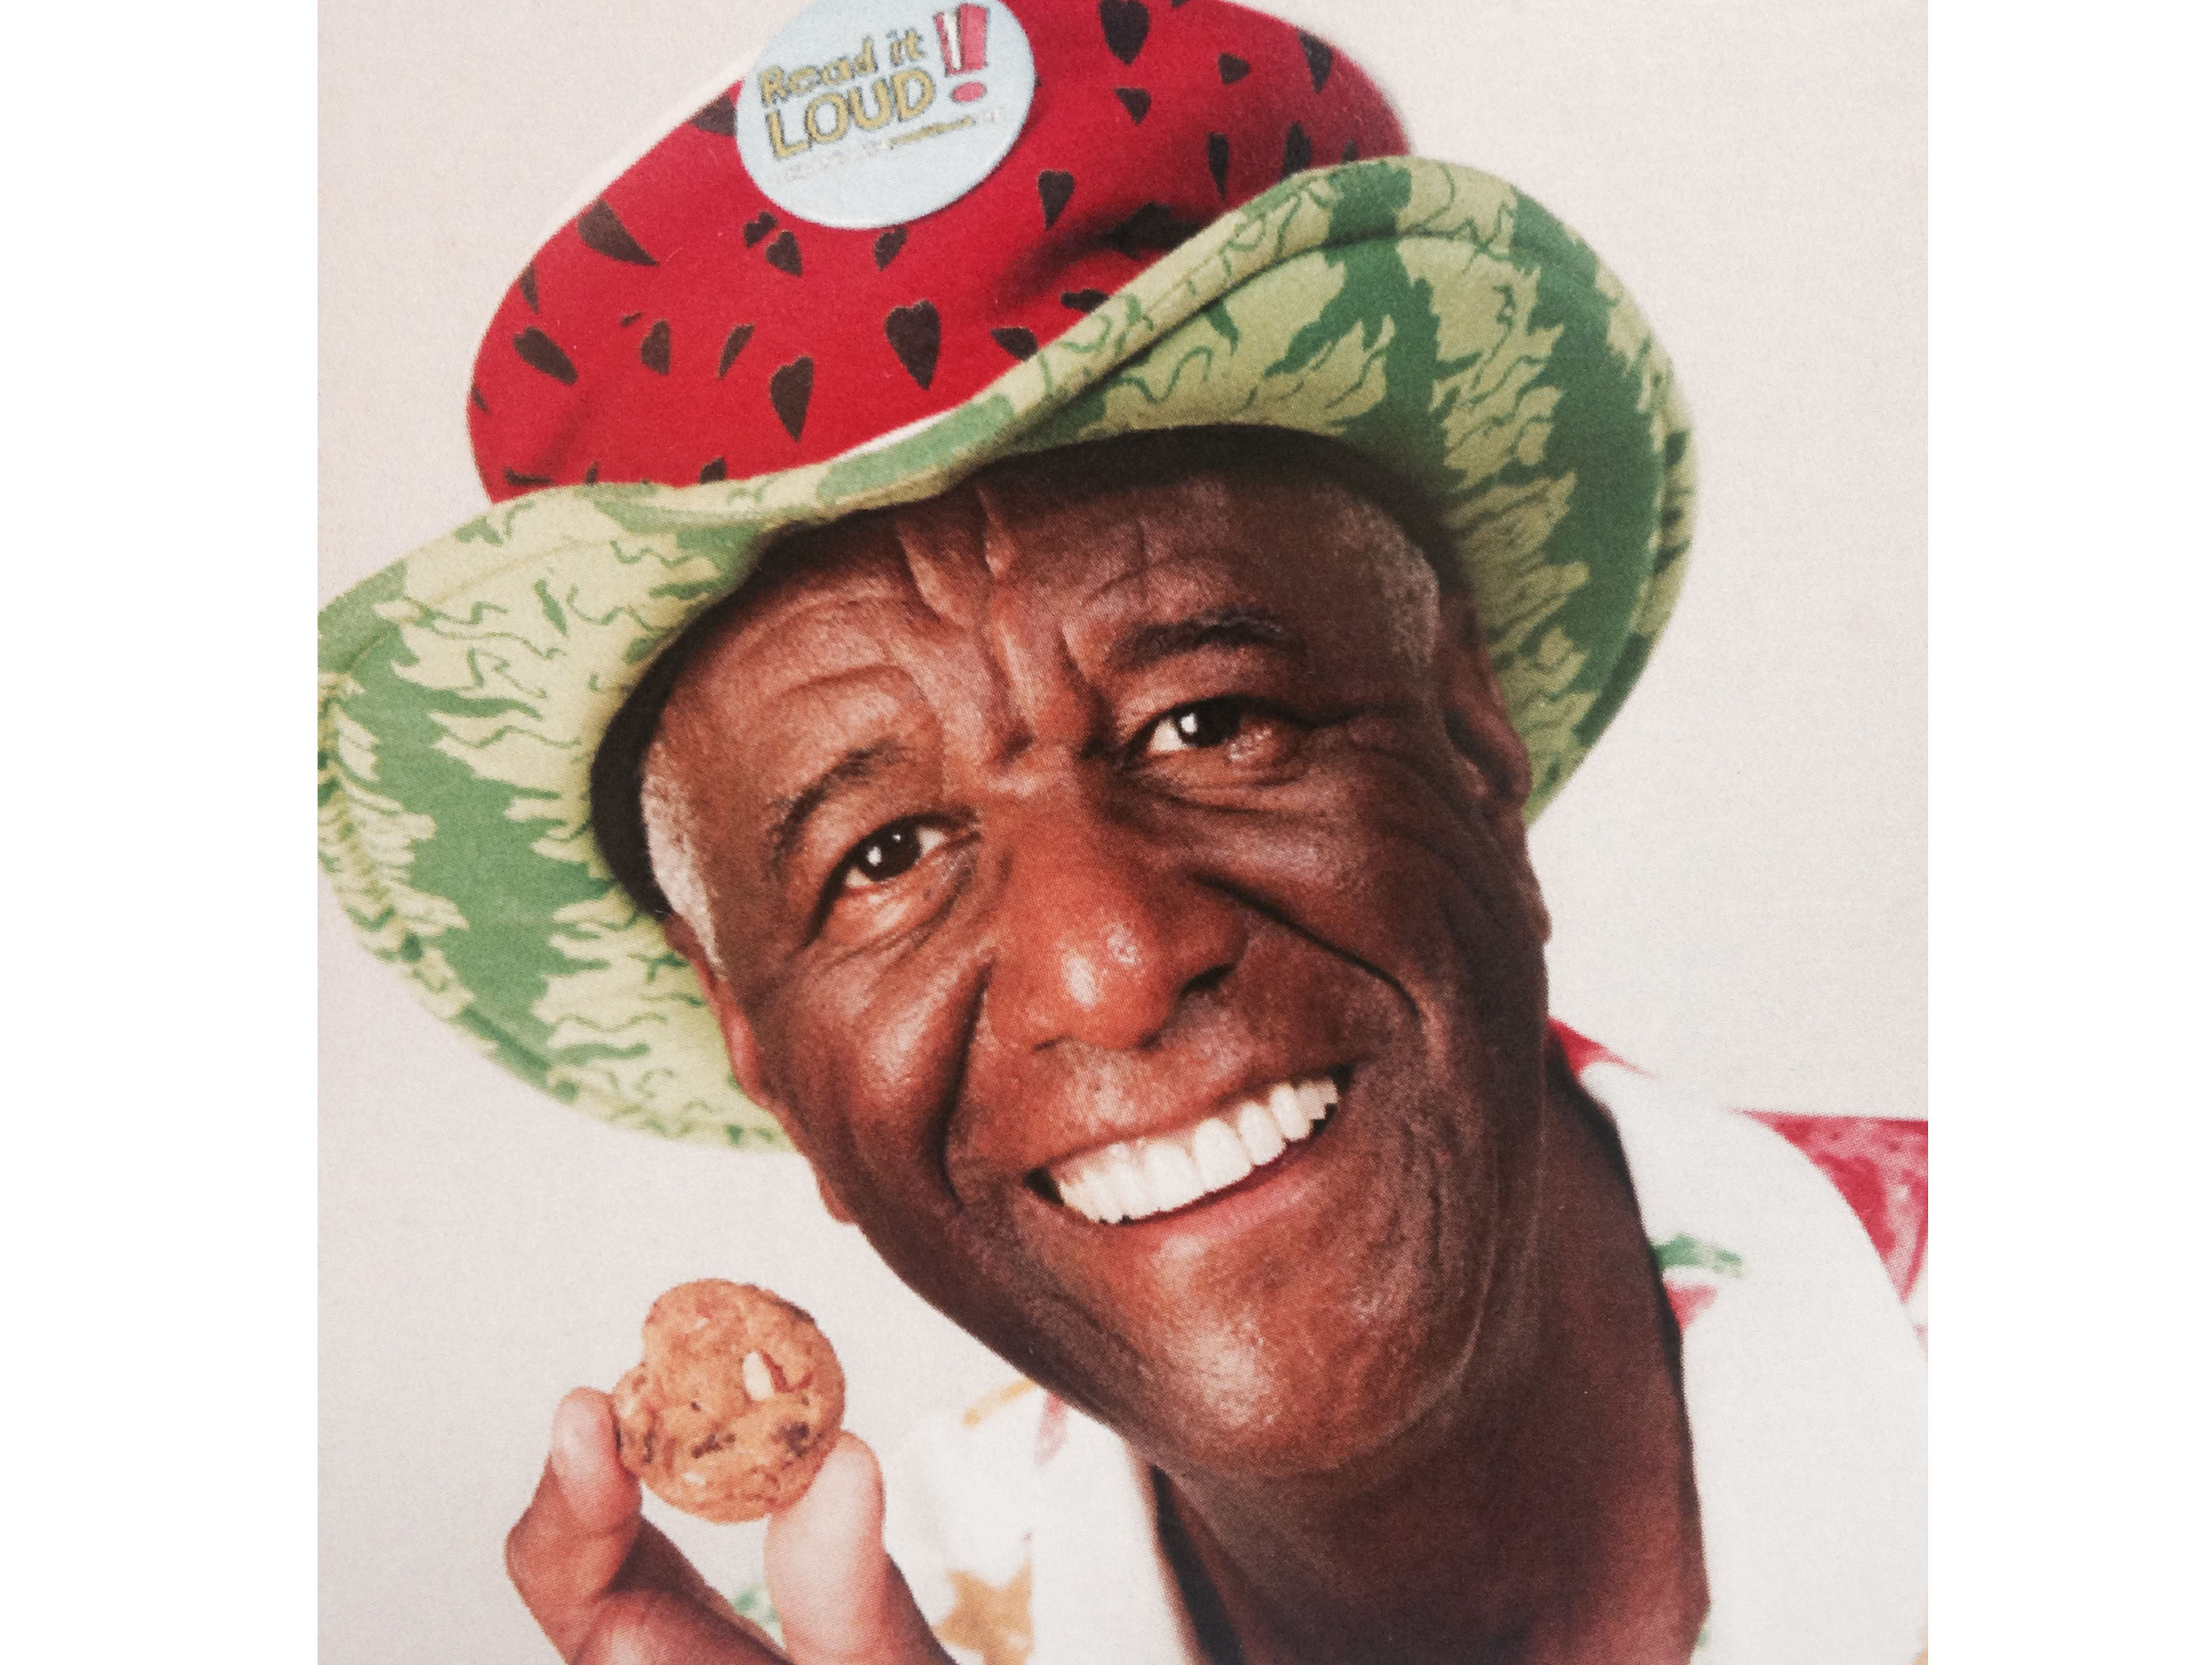 Worksheet Famous Amos famous amos founder wally is staging a cookie comeback los angeles magazine